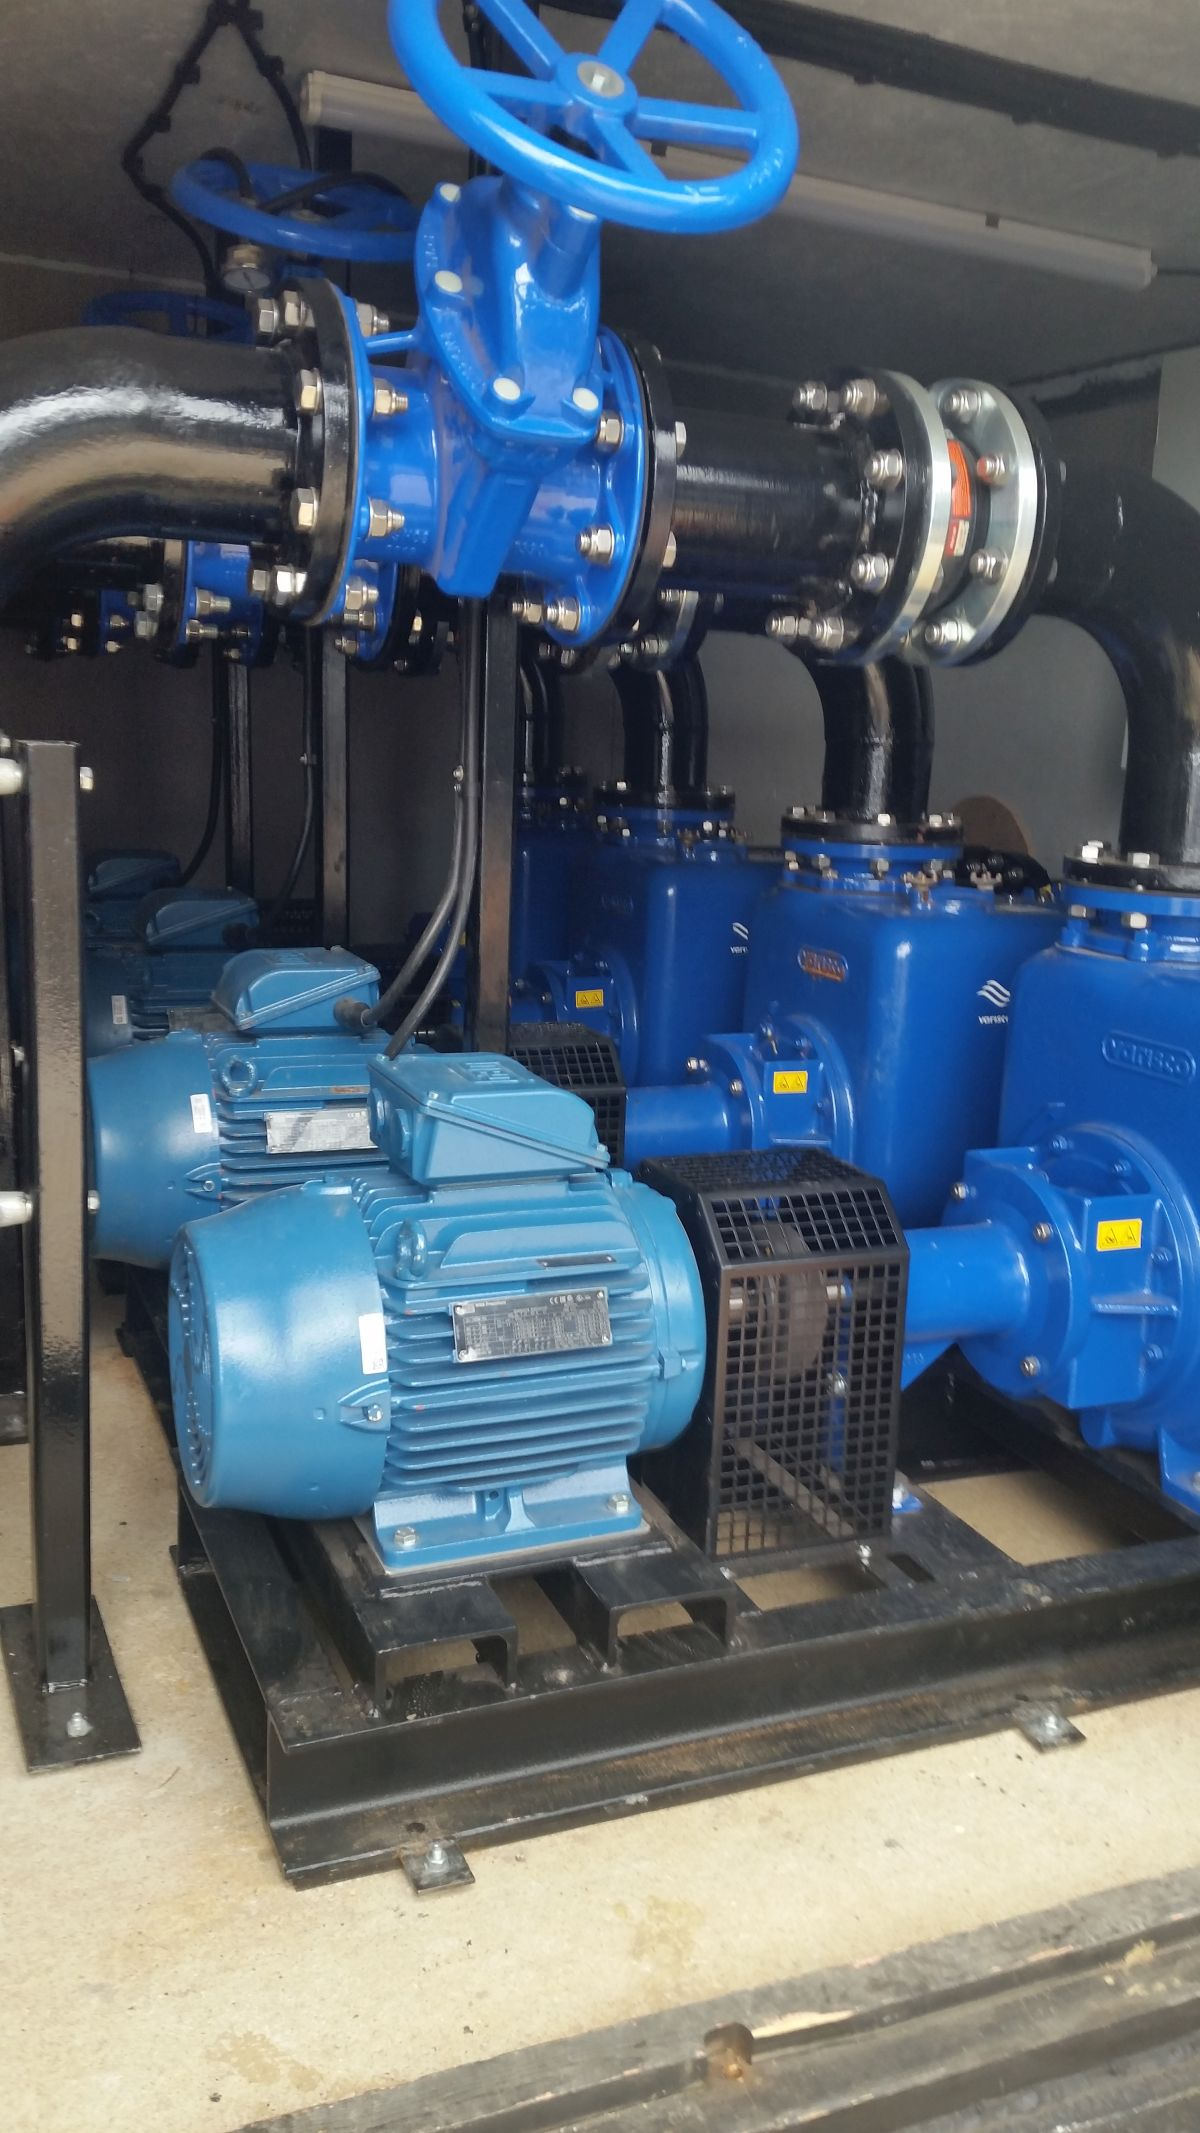 ETA Control Systems Ltd Commercial Electrical Installations Electrical work for Marinas, farms, farm buildings, factories, large industrial units & marinas Oxfordshire. Agricultural electrical engineers Pig farm